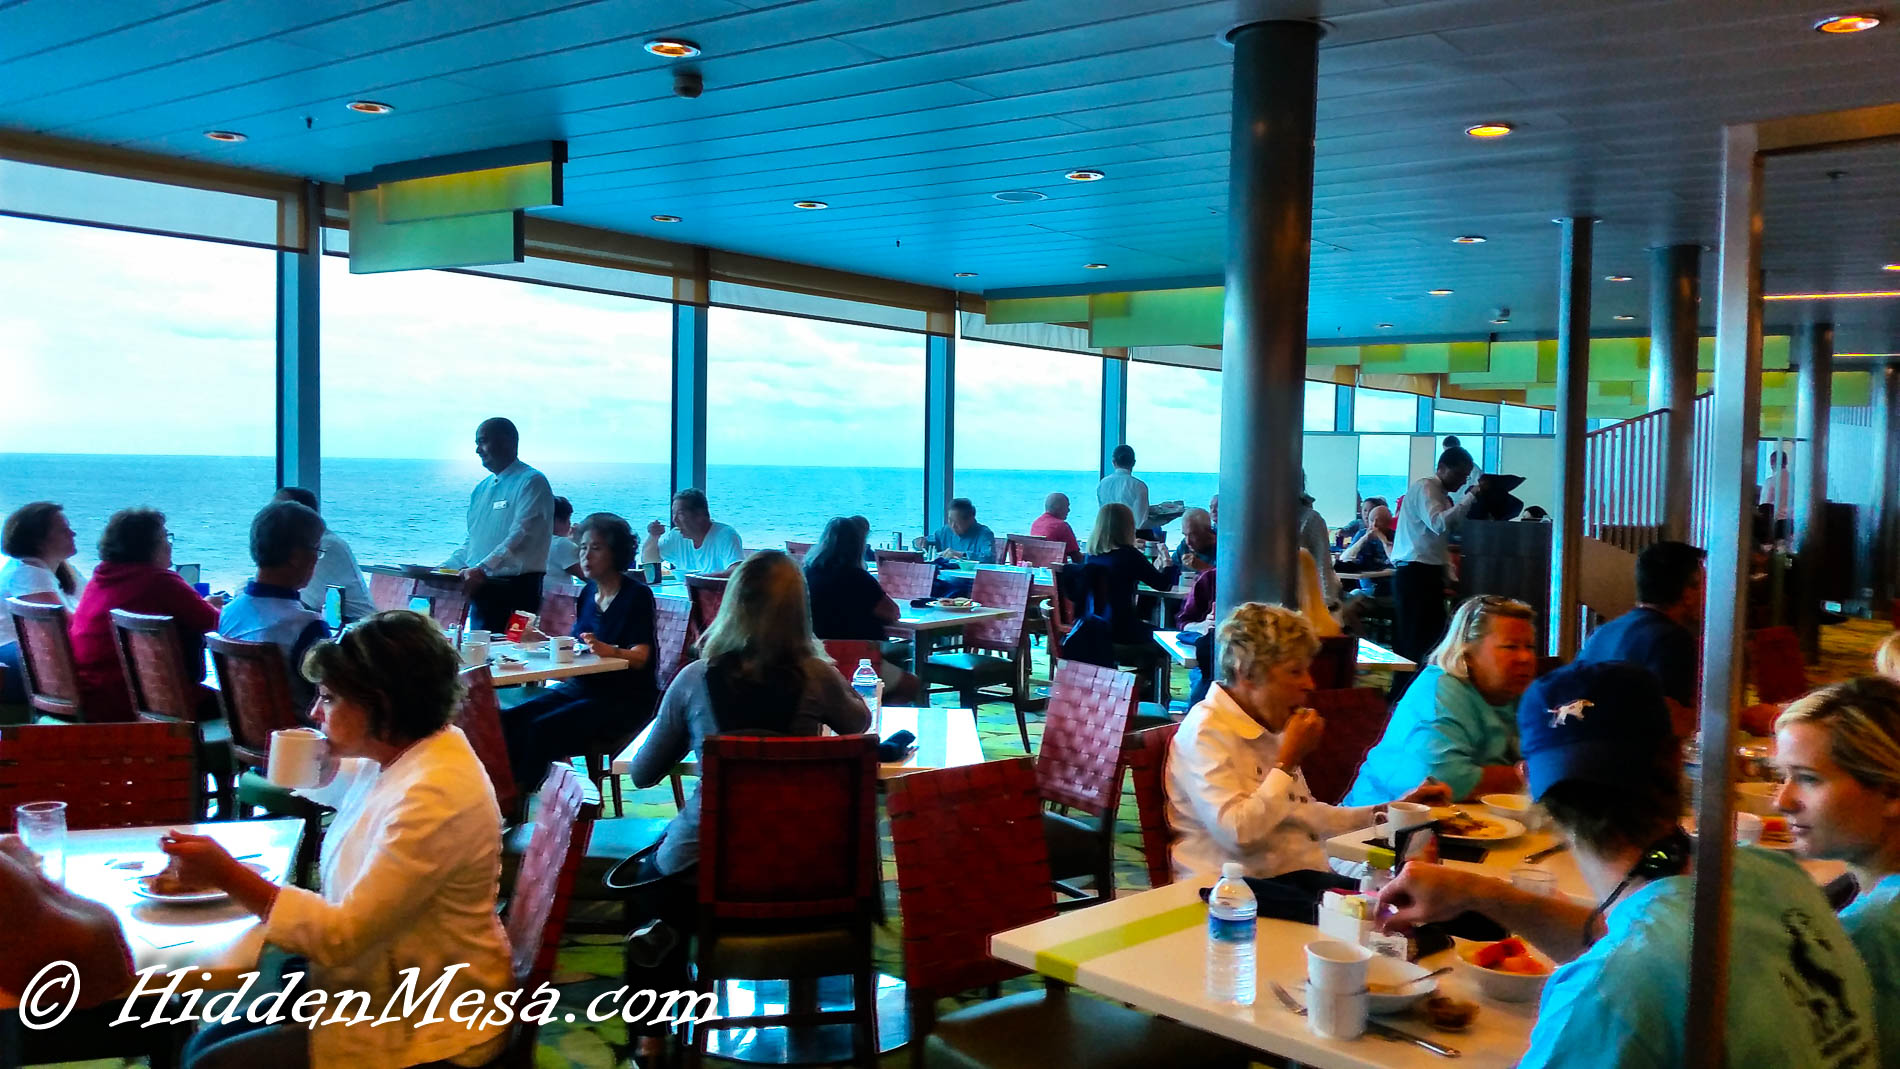 Seating at the Oceanview Cafe